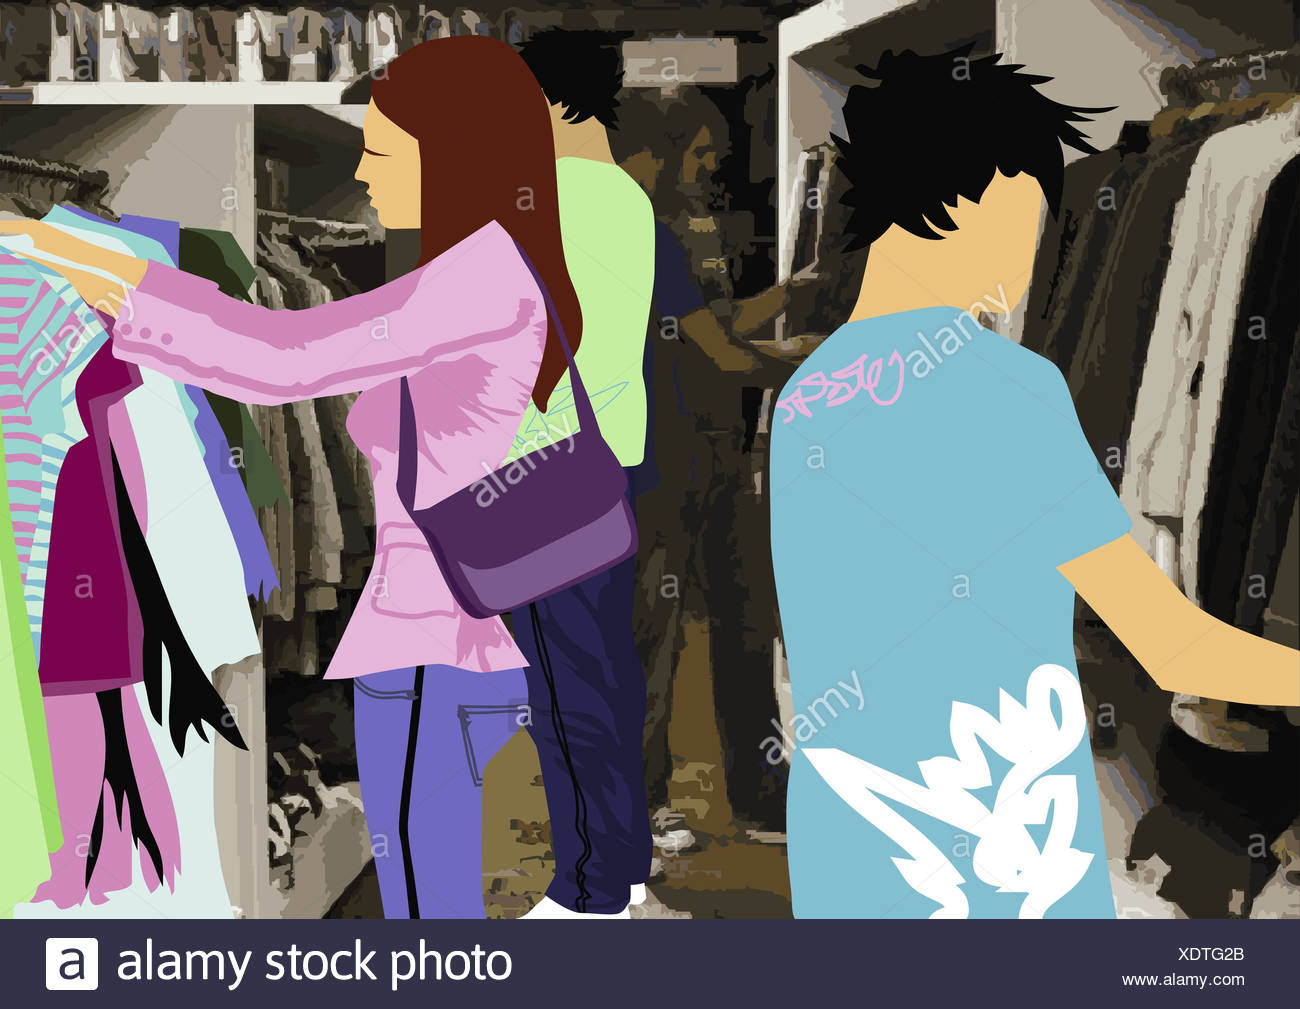 Illustration boutique people young clothing chooses department store business shopping centers woman handbag men shops shopping - Stock Image